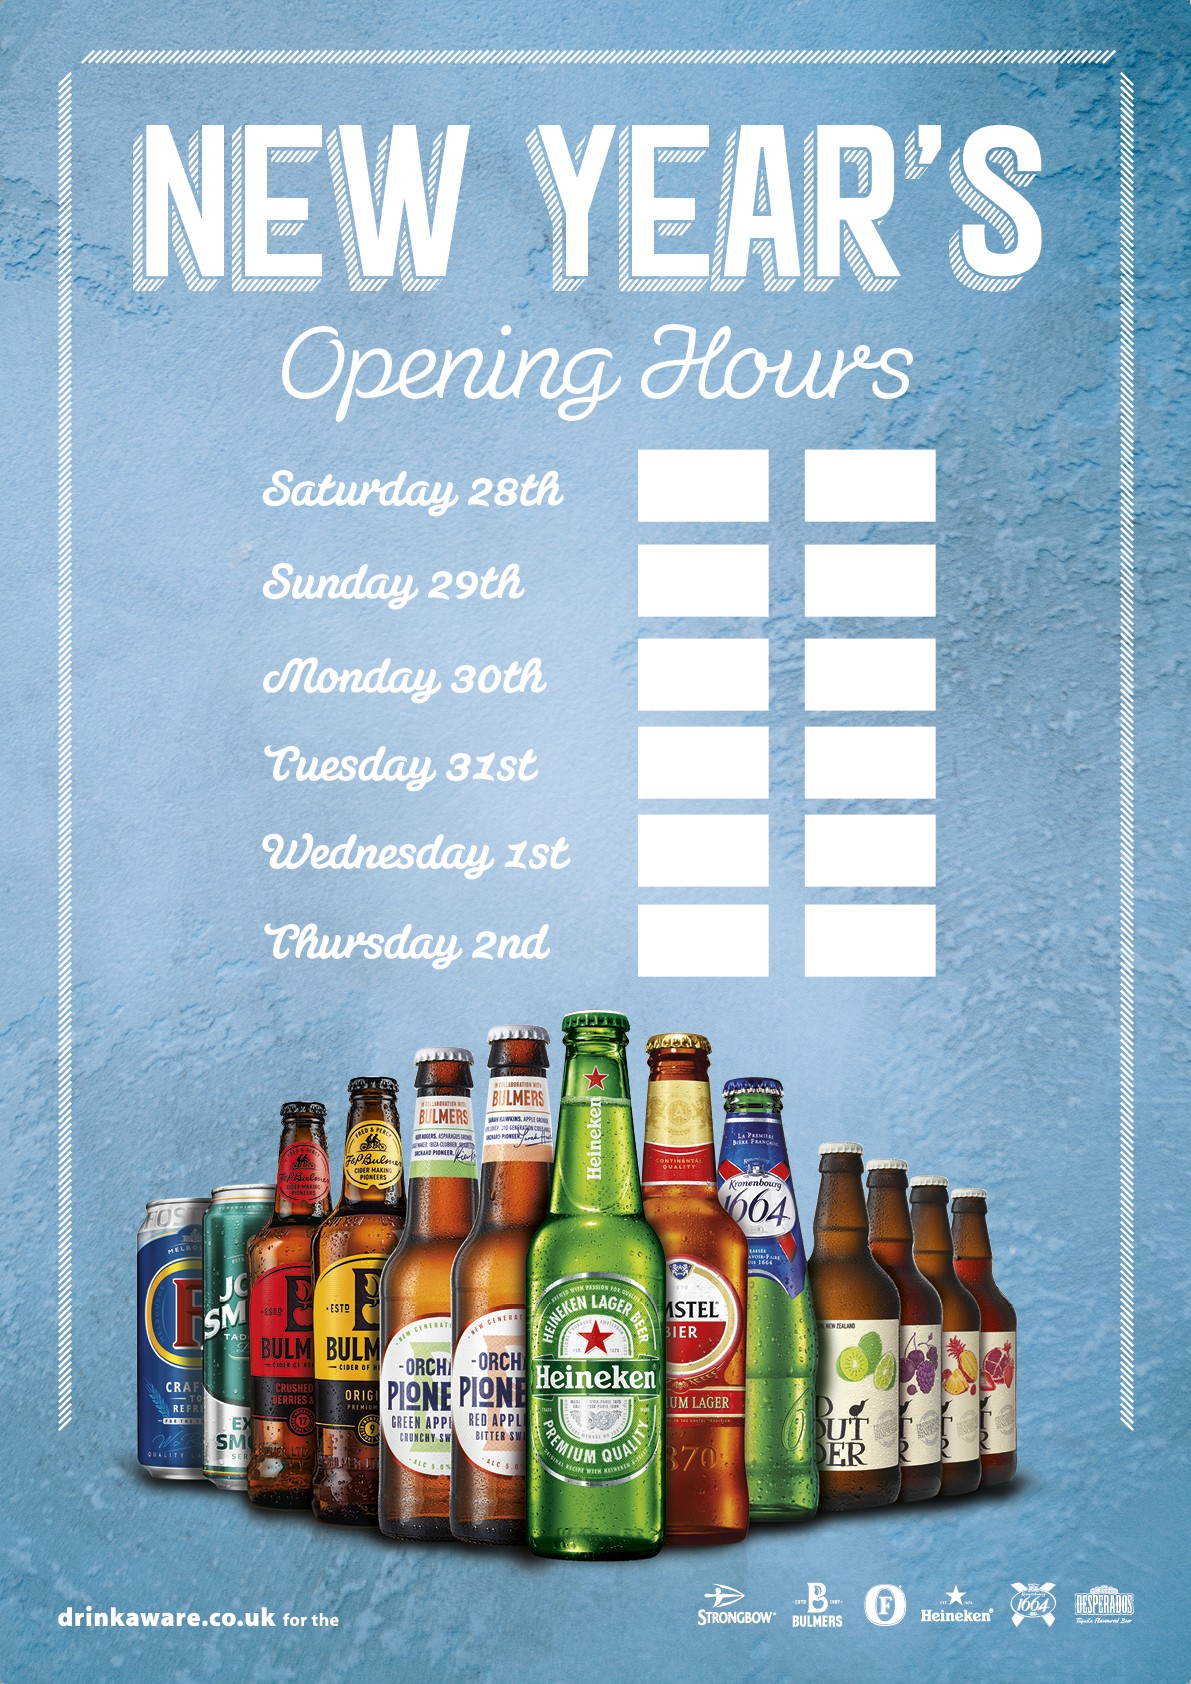 New Year Opening Hours Poster (Branded)